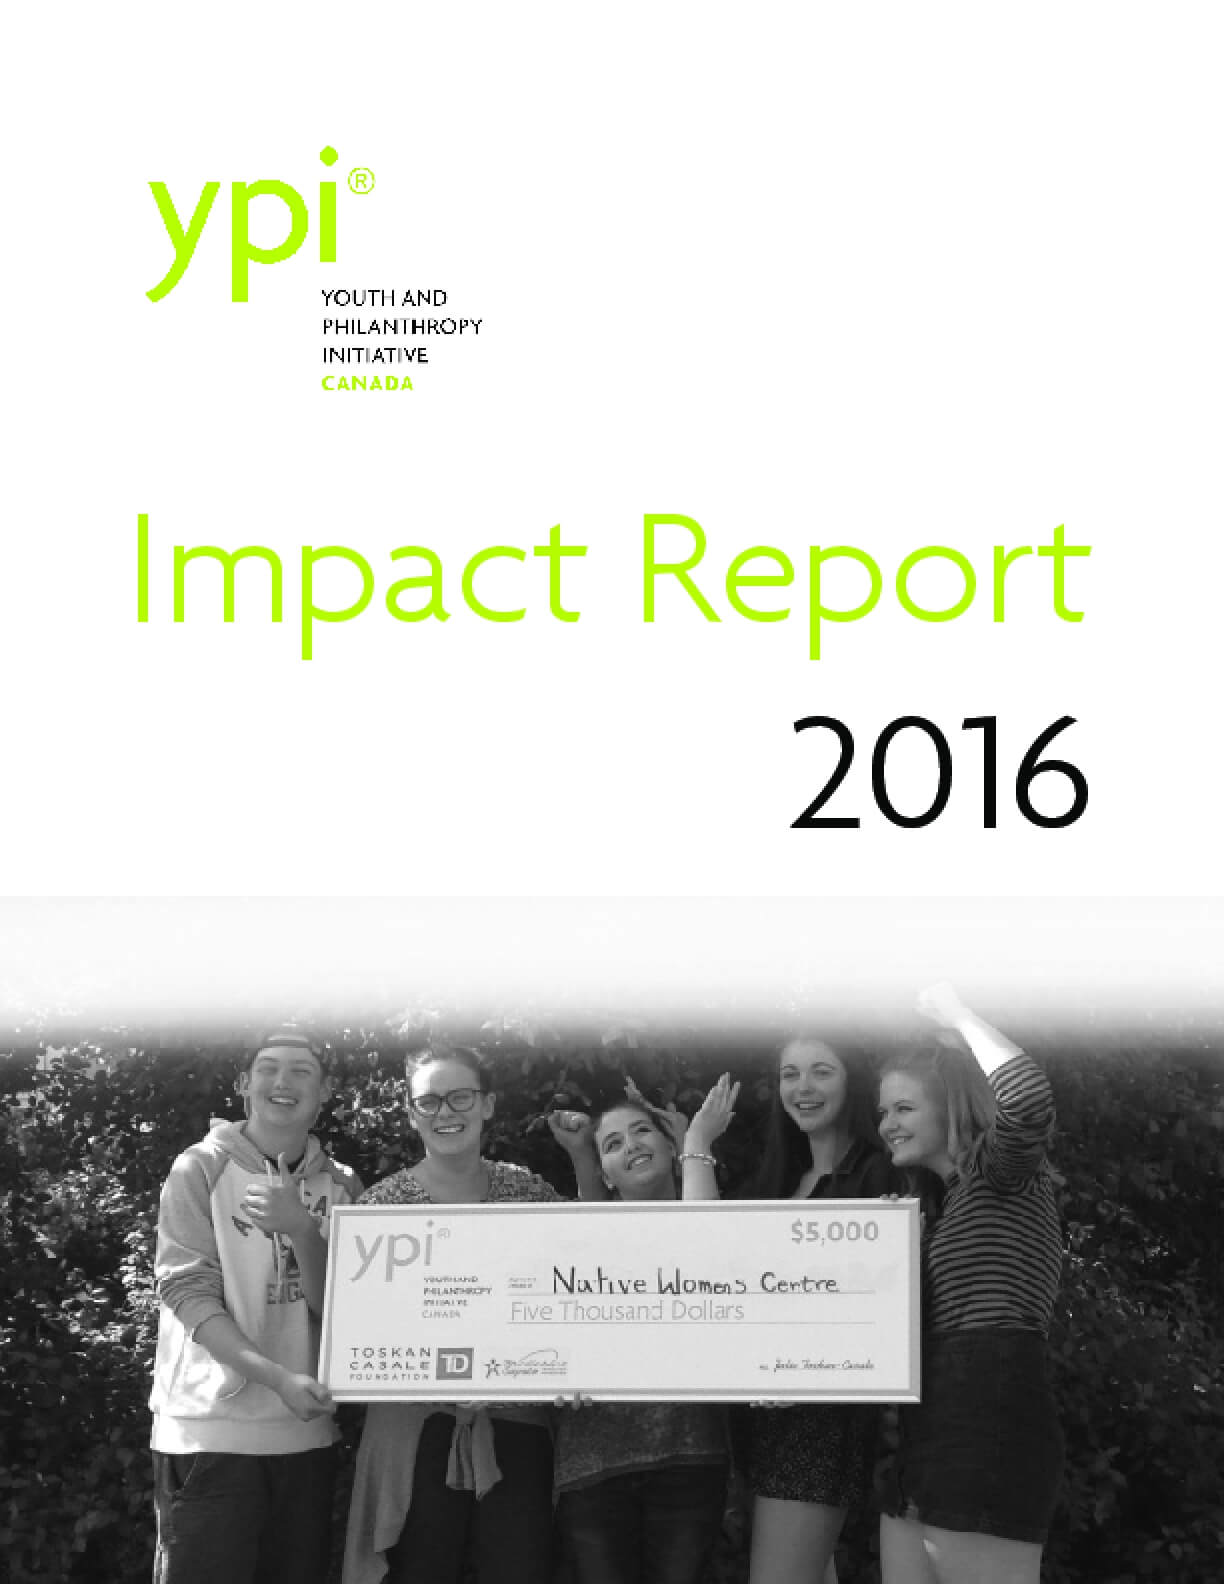 YPI Canada Impact Report 2016